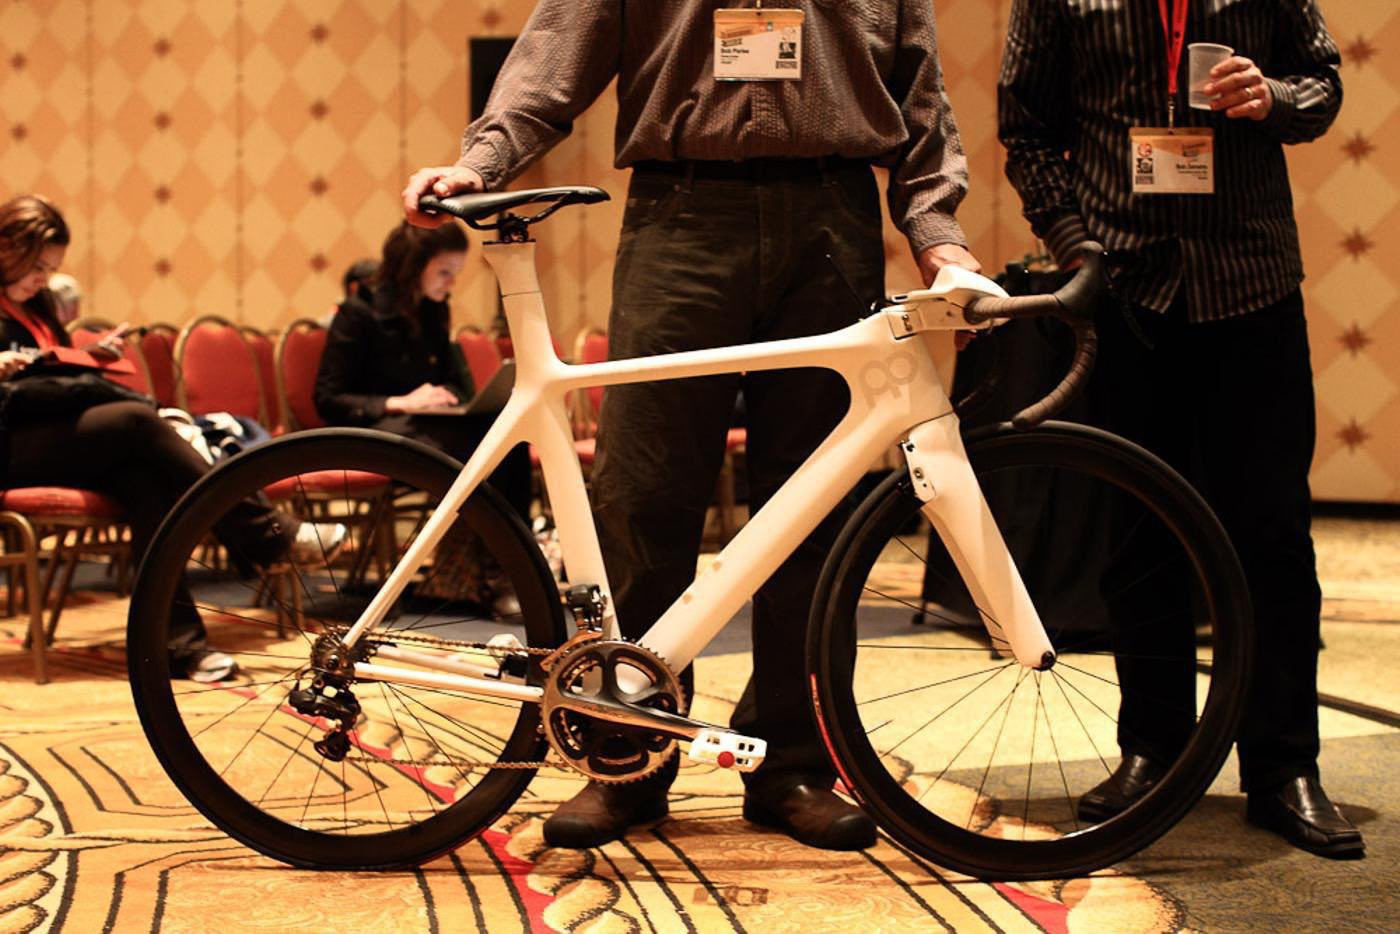 Parleee Cycles Toyota Prius Project bike shown at SXSW 201X via John Prolly / The Radivist